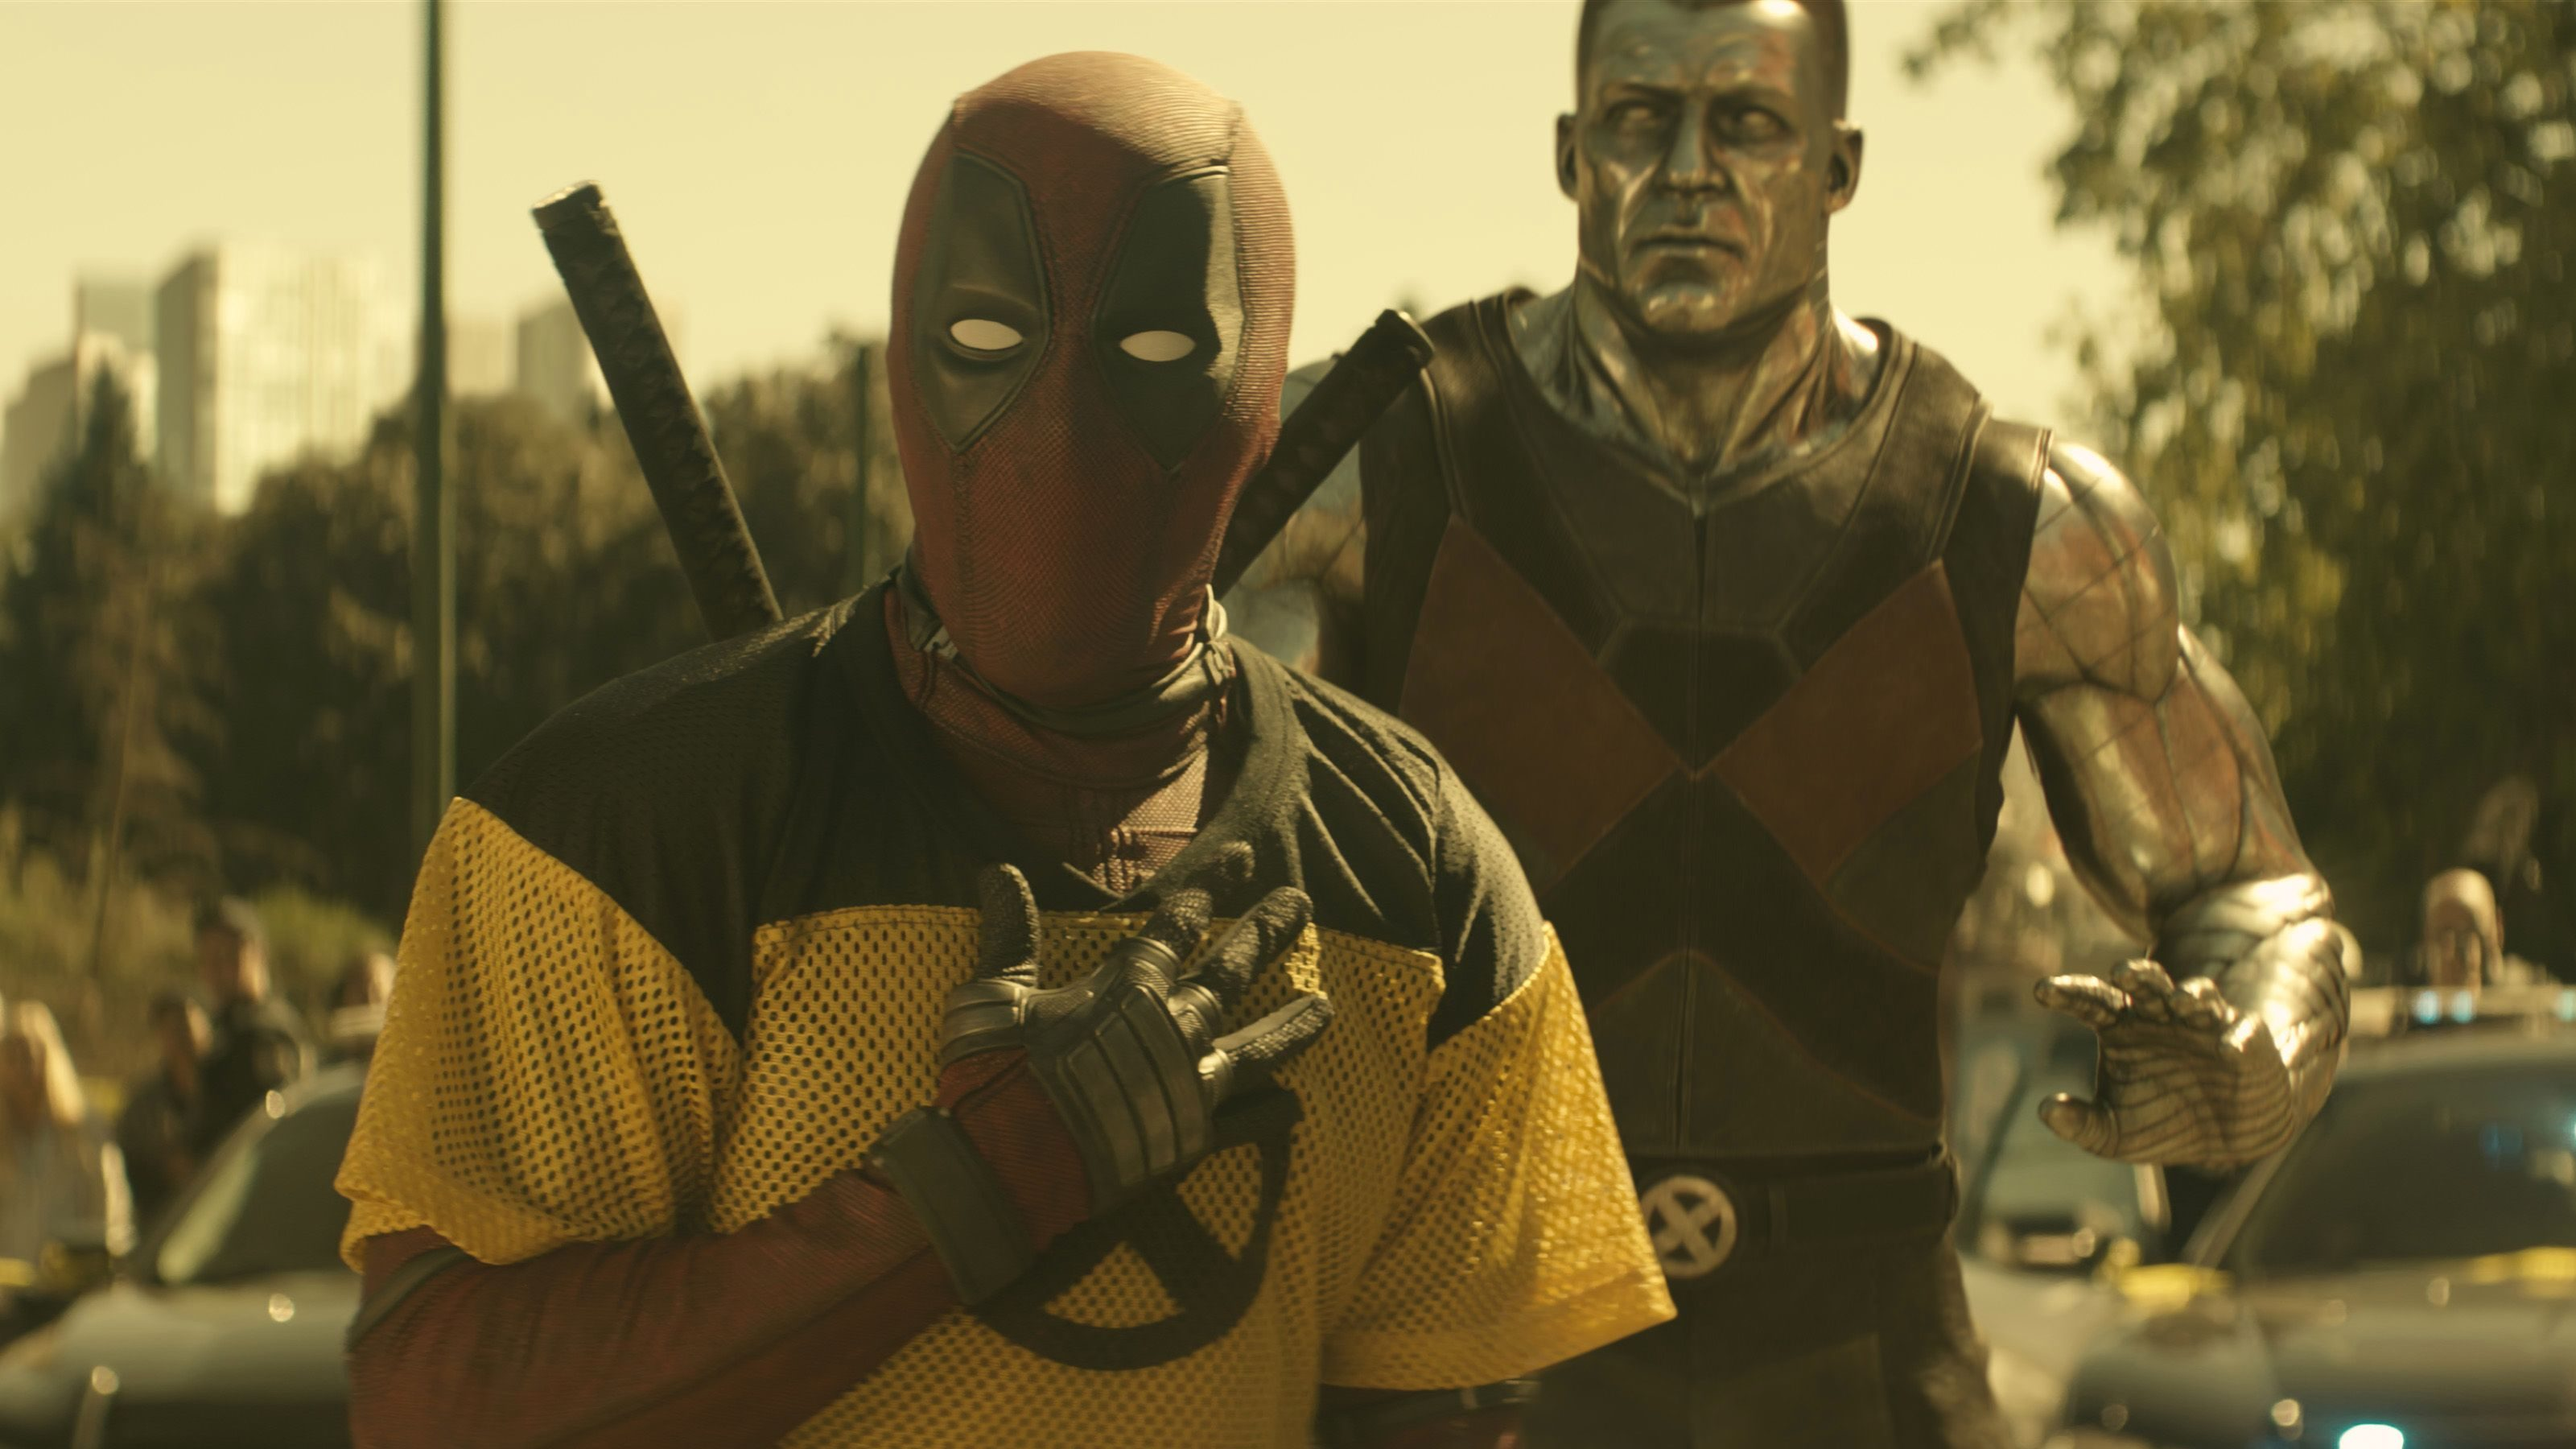 mb0340_pubstill_v0212.1010 – Deadpool (Ryan Reynolds) and Colossus in Twentieth Century Fox's DEADPOOL 2. Photo Credit: Courtesy Twentieth Century Fox.